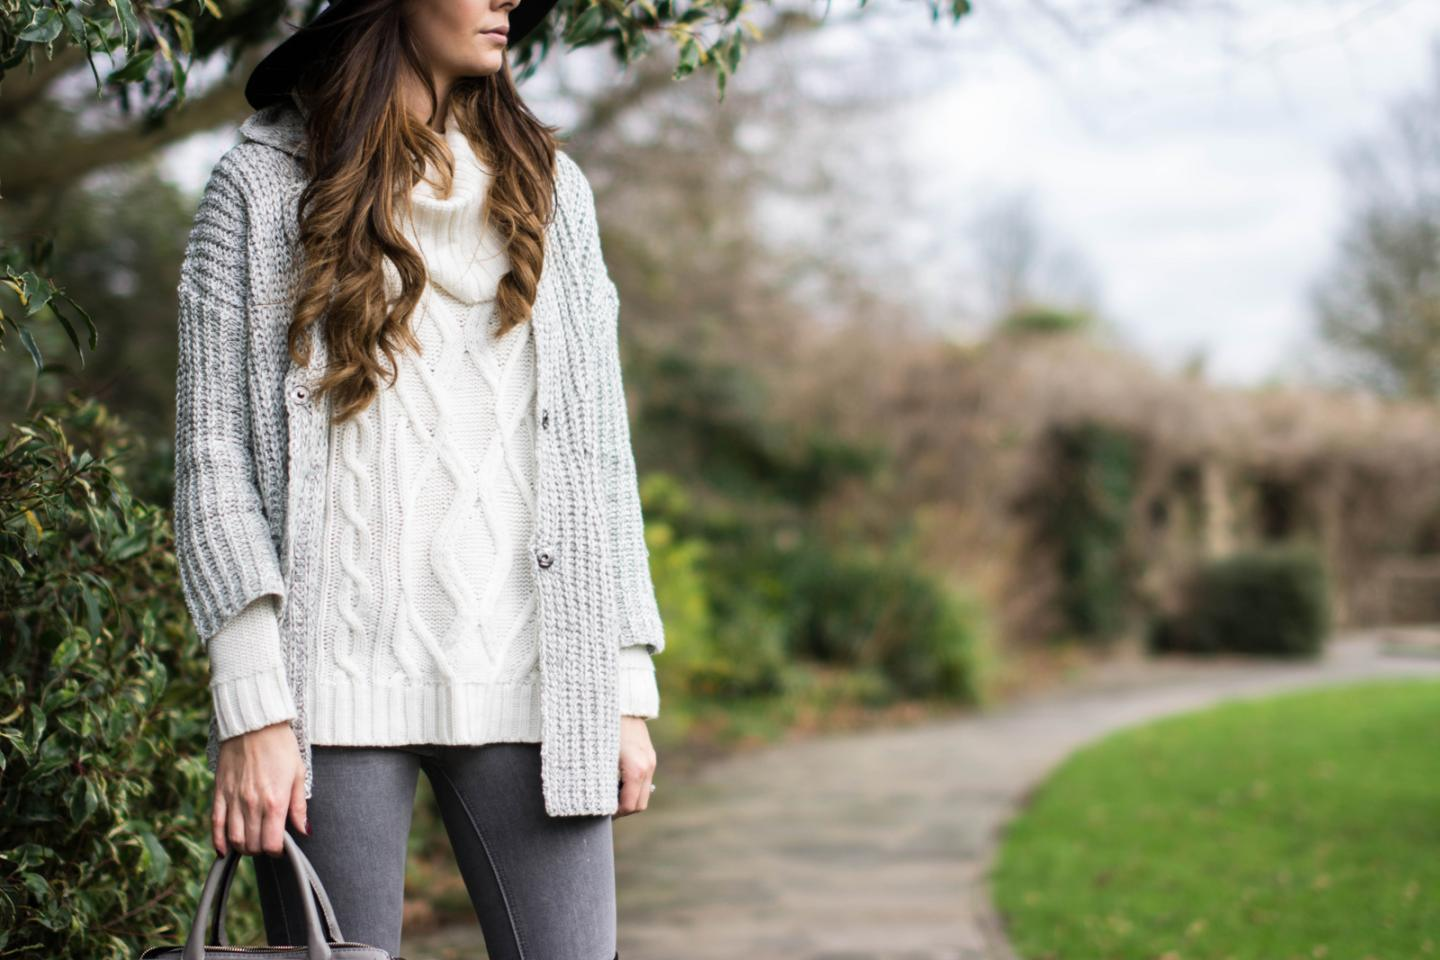 EJSTYLE - Lookbook store cardigan knit, forever 21 cream cowl neck sweater jumper, Grey skinny jeans, layers, layering, OOTD winter outfit